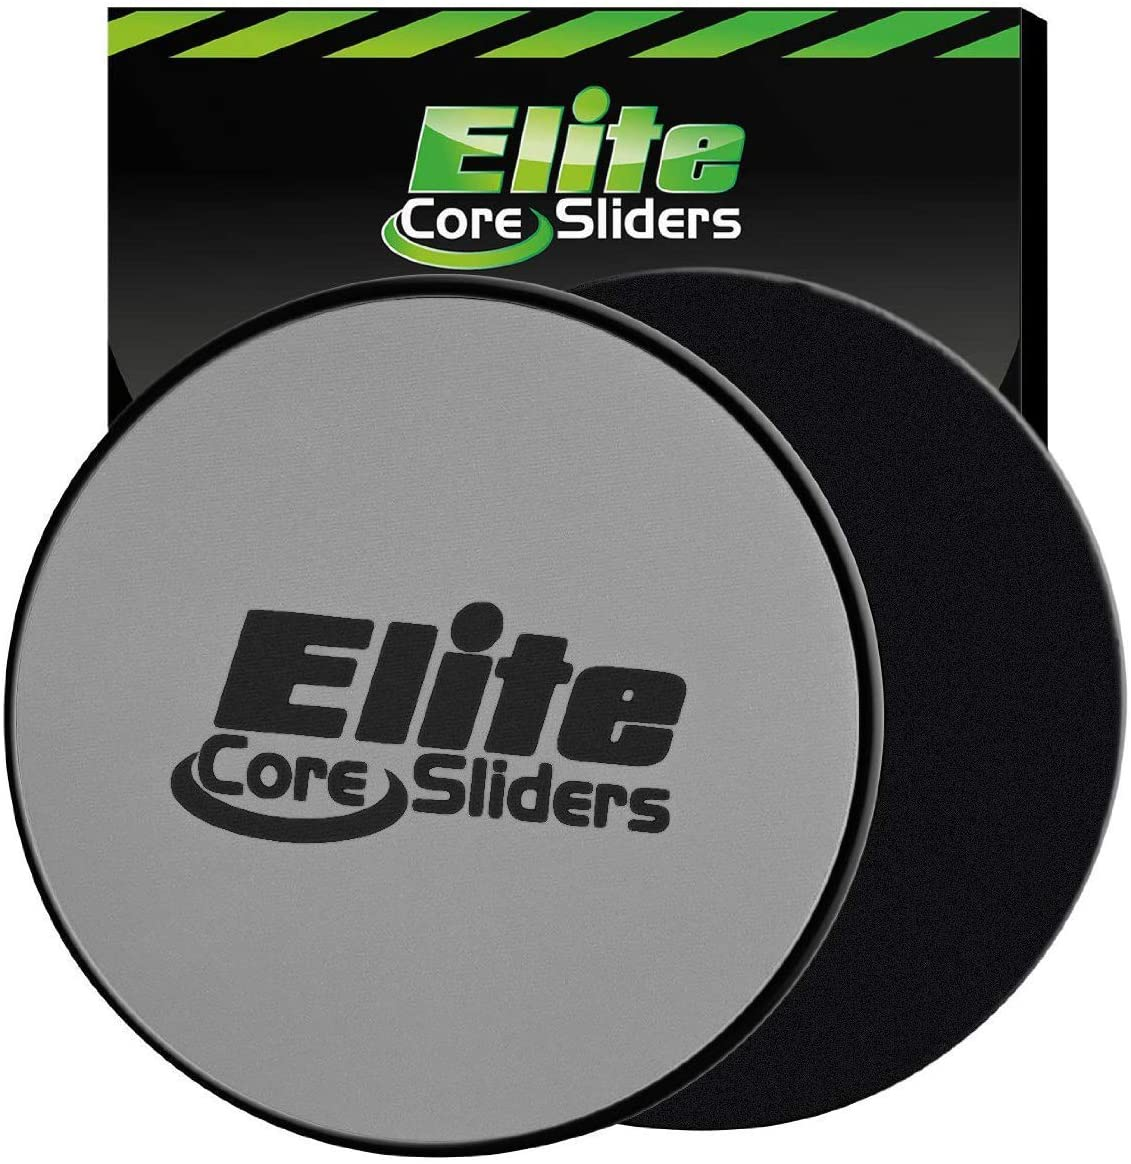 Elite Sportz Exercise Sliders are Double Sided and Work Smoothly on Any Surface. Wide Variety of Low Impact Exercise s You Can Do. Full Body Workout, Compact for Travel or Home Ab Workout